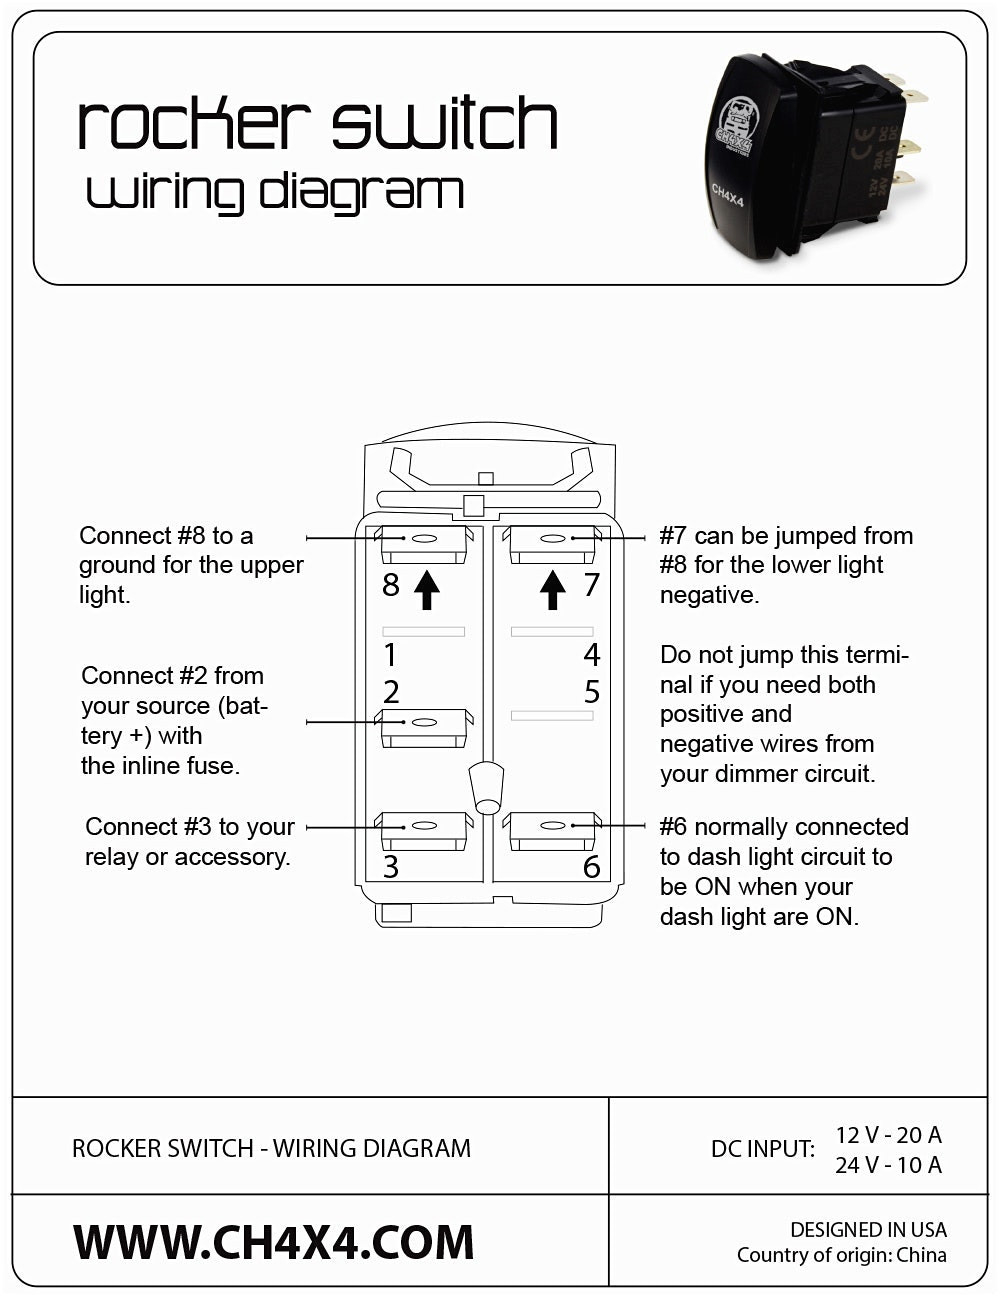 Carling Switch Wiring Diagrams : carling, switch, wiring, diagrams, DIAGRAM], Rocker, Switch, Wiring, Diagram, Version, Quality, BLANKDIAGRAMS.ITALIARESIDENCE.IT